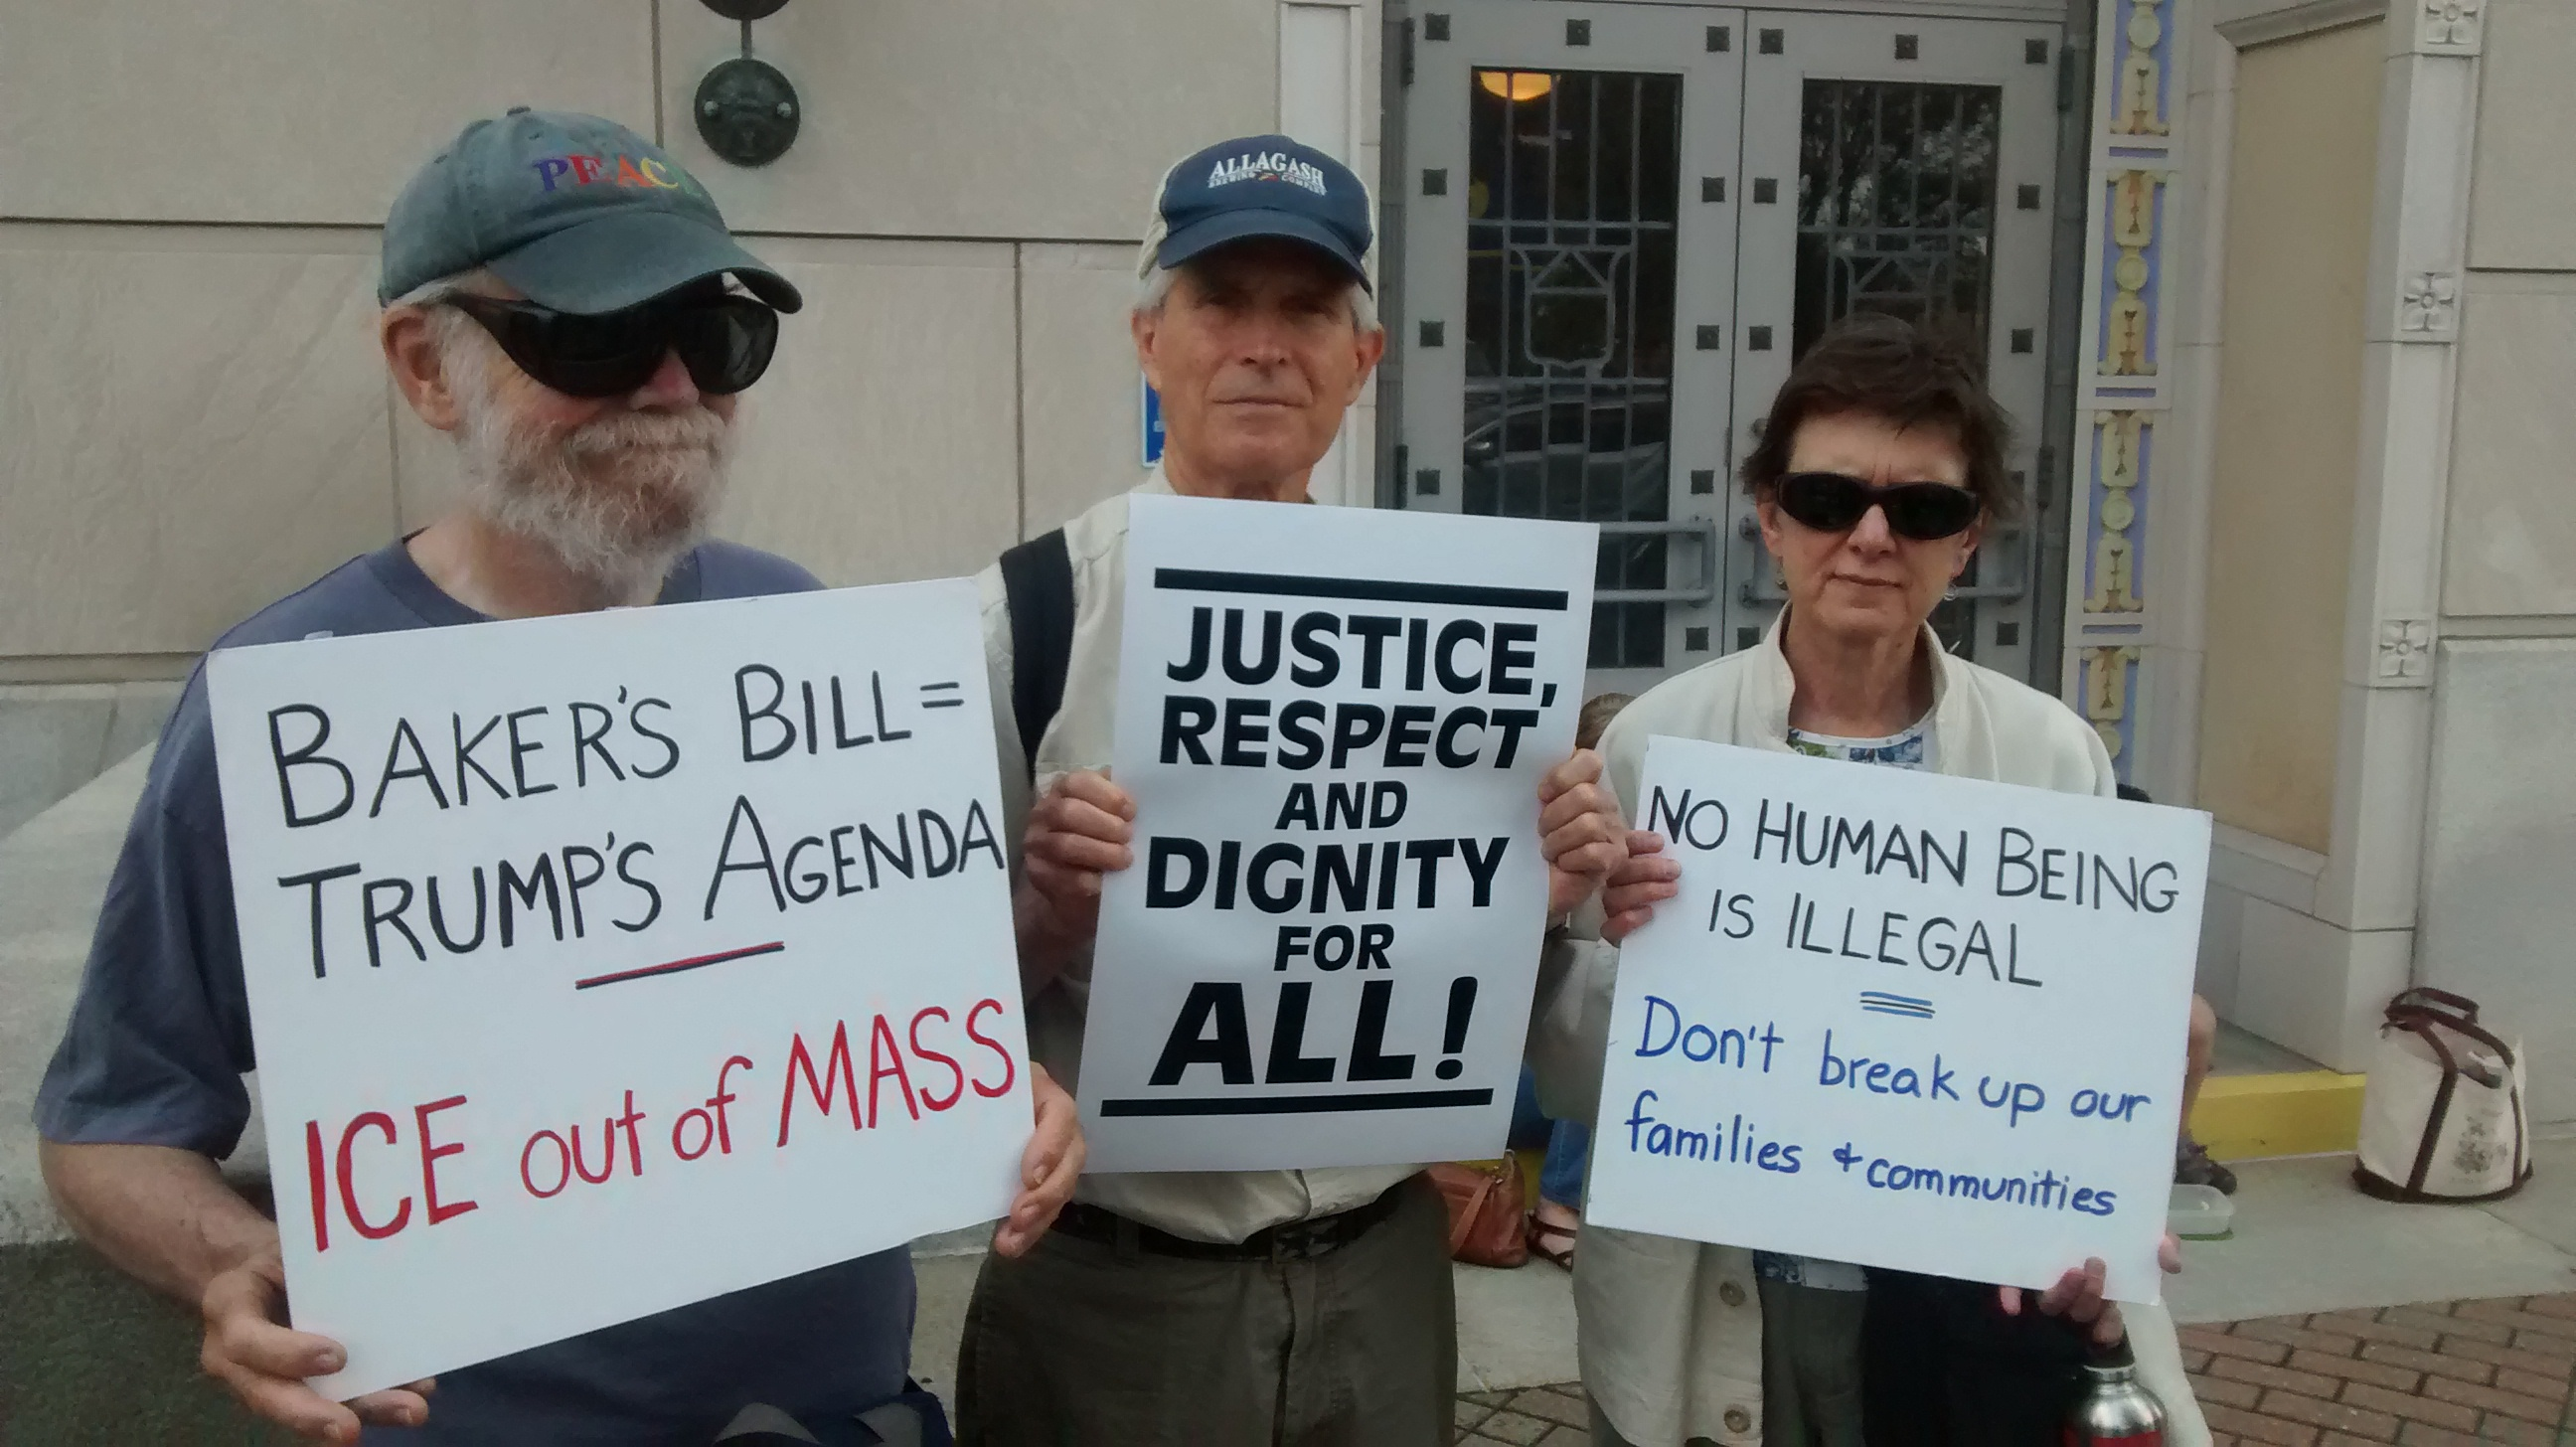 Western Mass Immigrant Rights Activists Burn Baker On Ice Bill Wiring Diagrams And Free Manual Ebooks 2009 Mercury Milan Charlie King Of Shelburne Falls Left Randy Kehler Colrain Center Candace Cassin Were Among Some The More Than 50